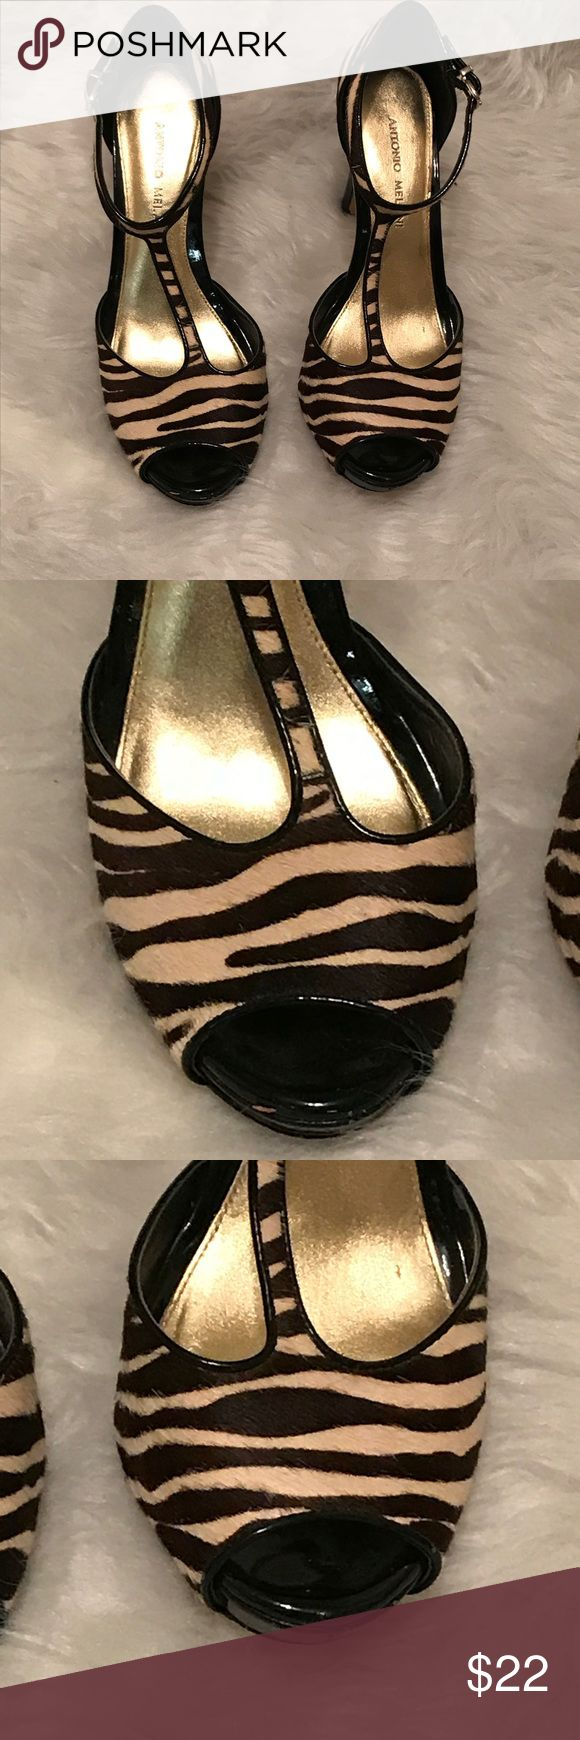 Antonio Melani- zebra stripe t strap heel Antonio Melani size 8 1/2 medium, beige and dark brown zebra striped T strap heel height is approximately 4 inches. Good condition. Signs of wear include the interior part of the strap is rubbing off and a few marks towards the front on the shoe. Refer to the last two photos. Some pitting in the bottom of the shoe. ANTONIO MELANI Shoes Heels